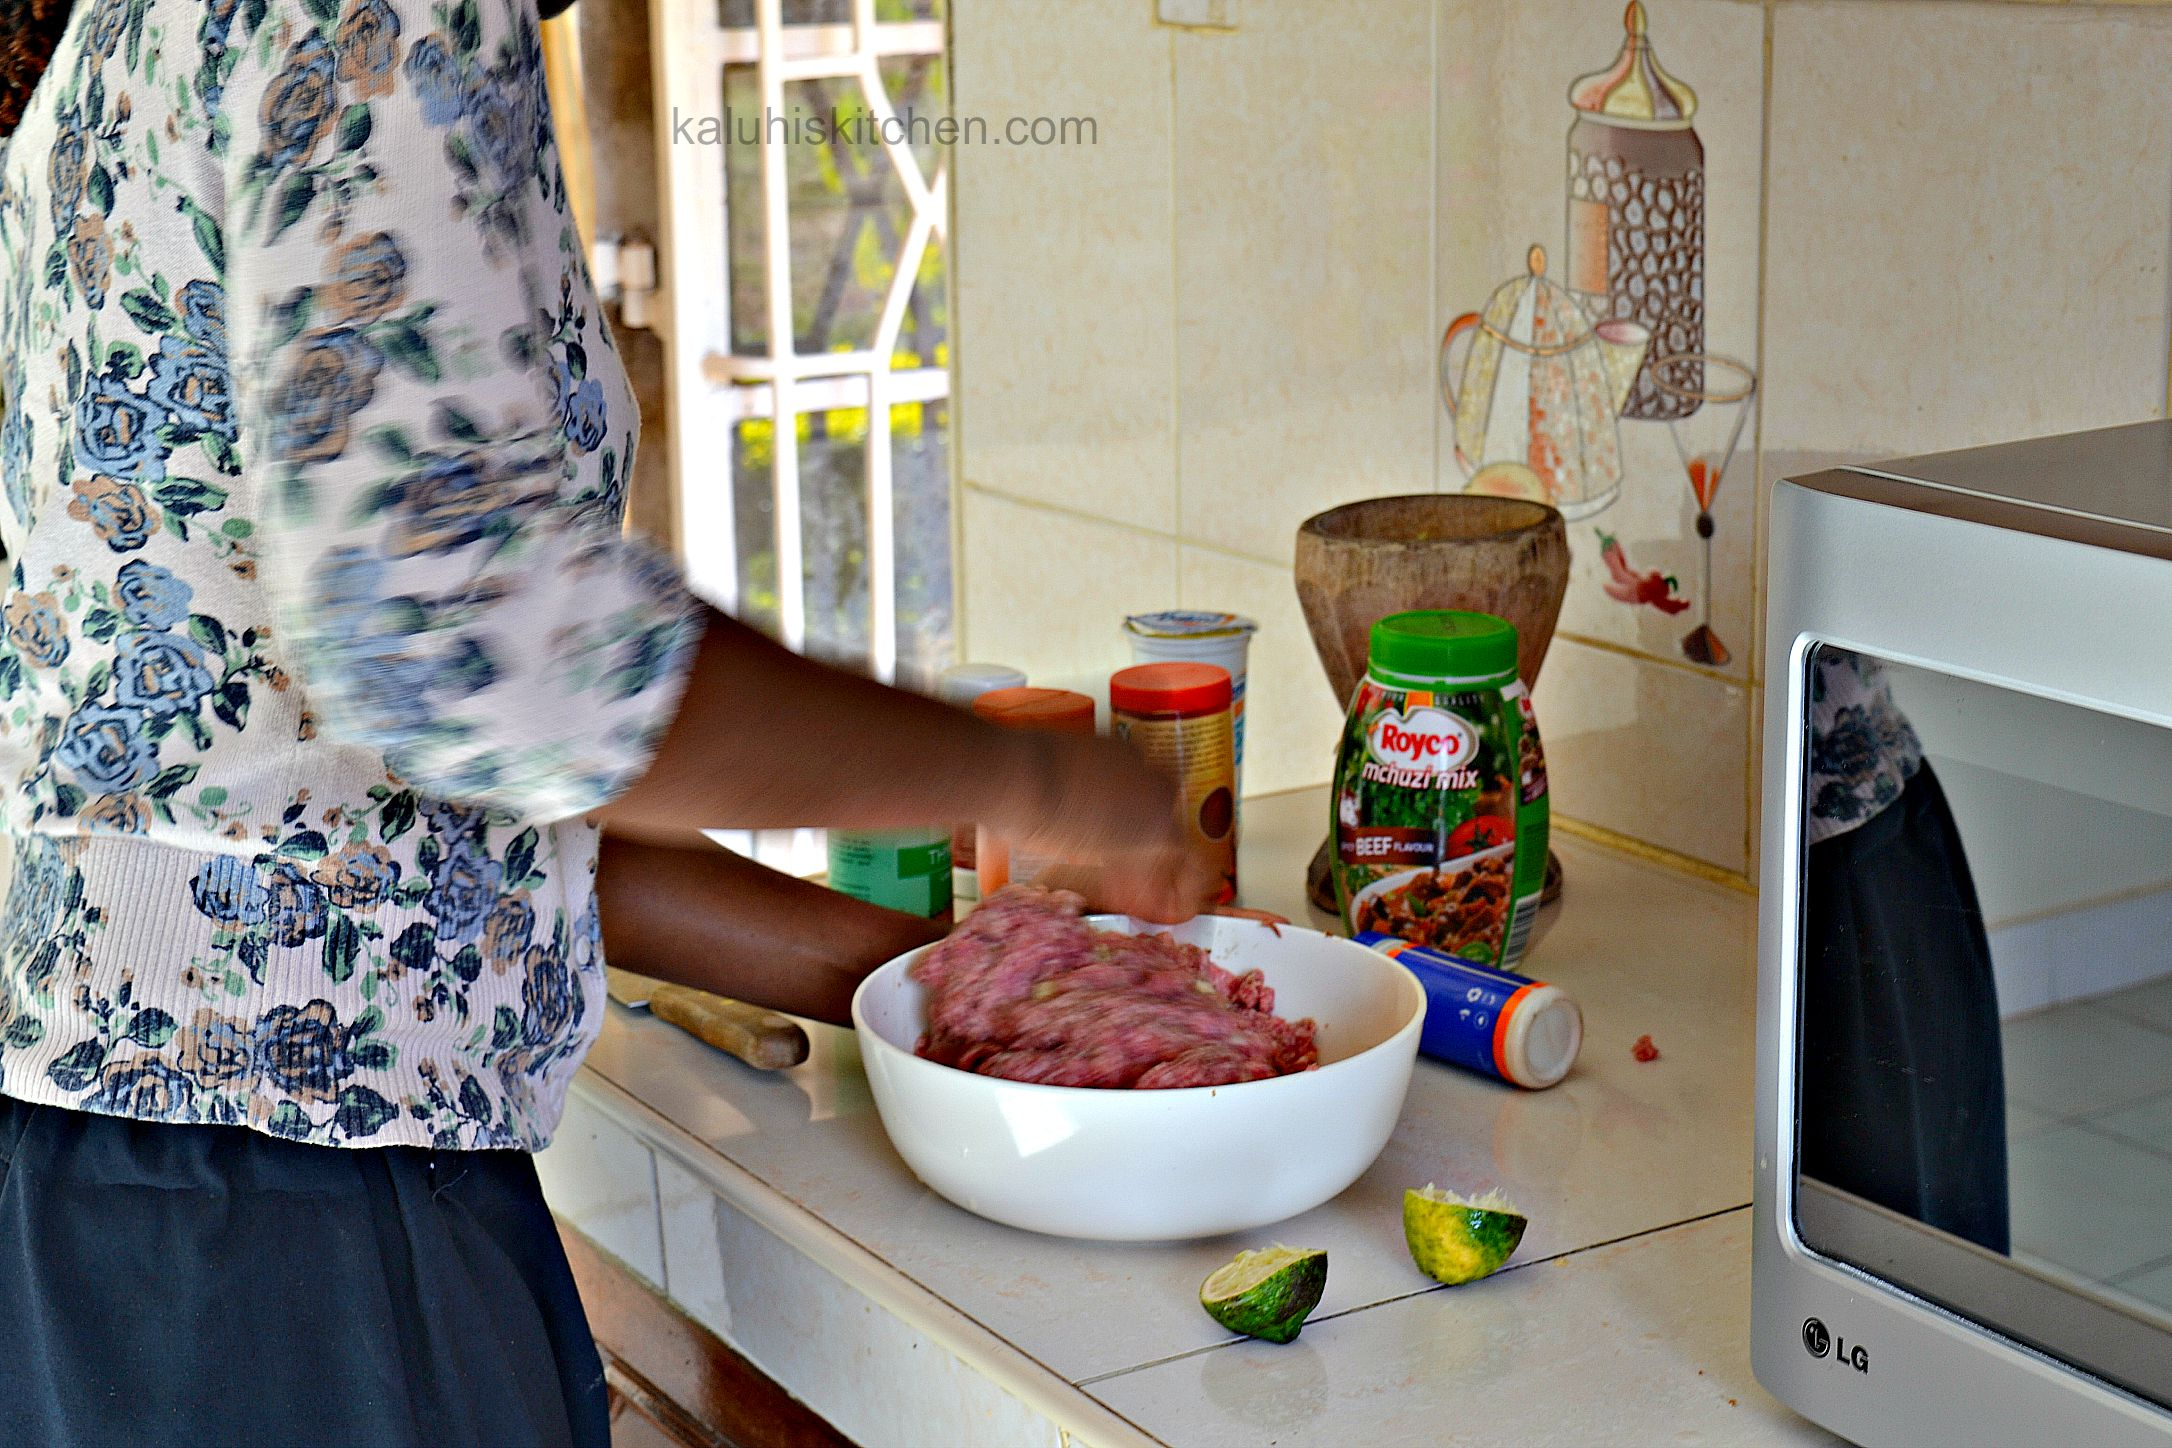 Kenyan food bloggers_mix the ingreditents evenly before proceeding to rolling up the balls_kaluhiskitchen.com